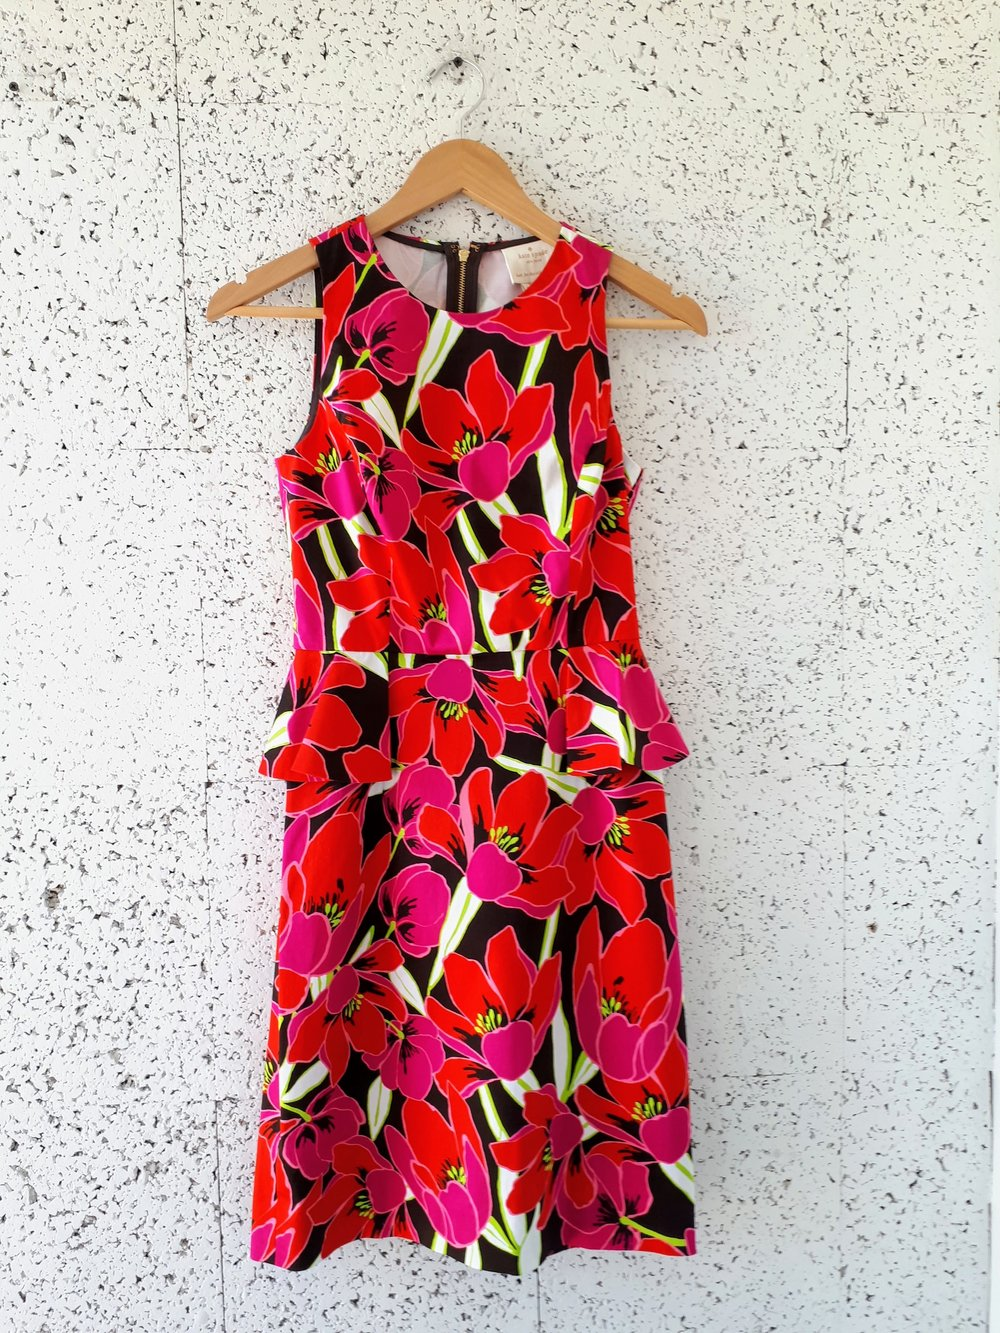 Kate Spade dress; Size 2, $110